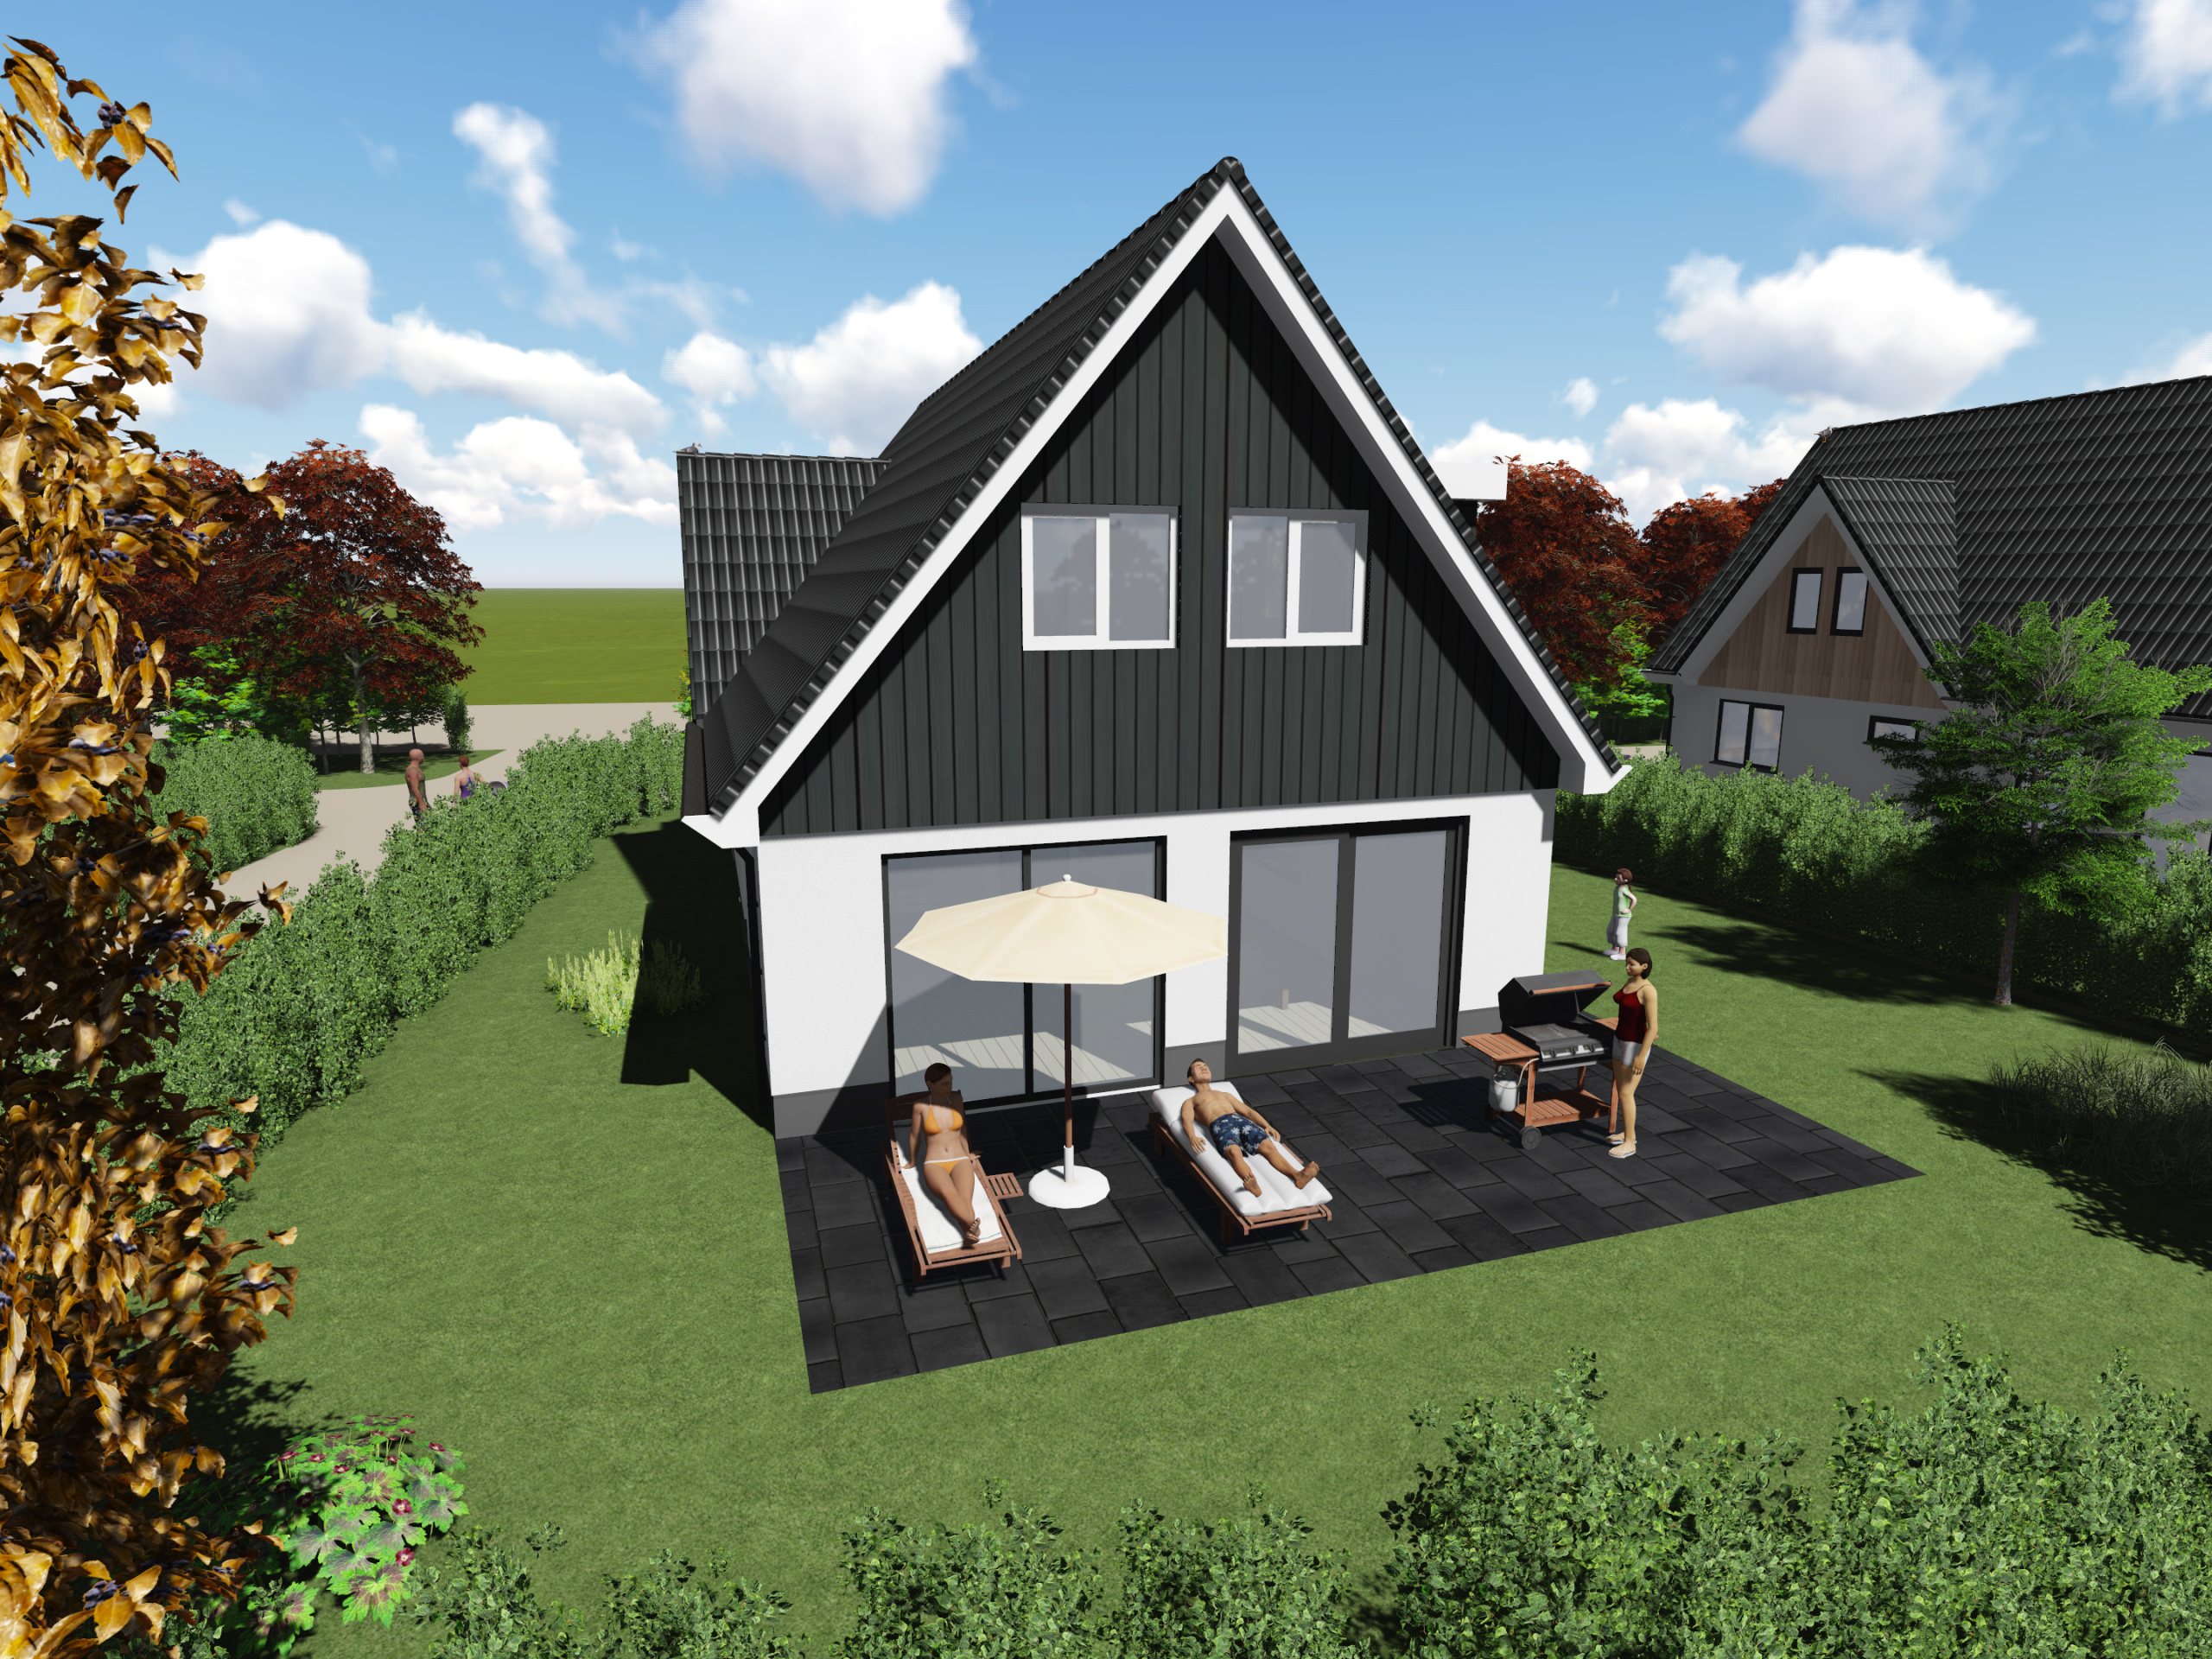 Holiday home near nature reserves, the North Sea and De Koog